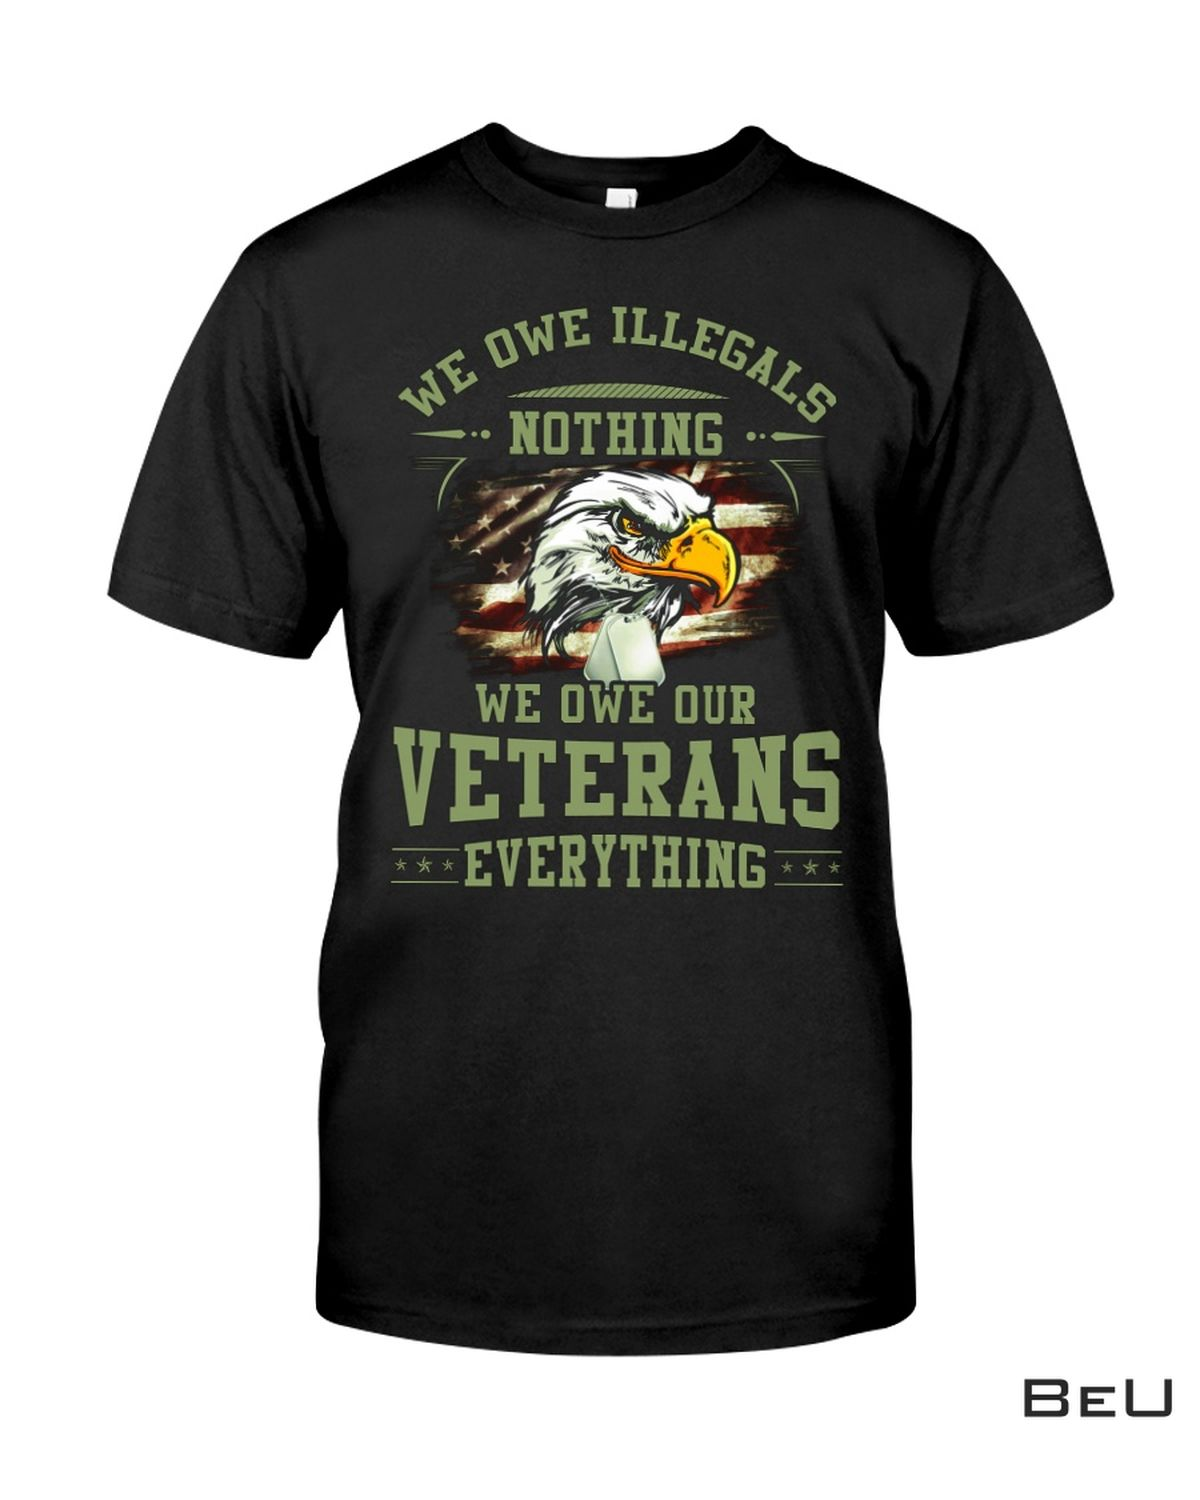 We Owe Illegals Nothing We Owe Our Veterans Everything Shirt